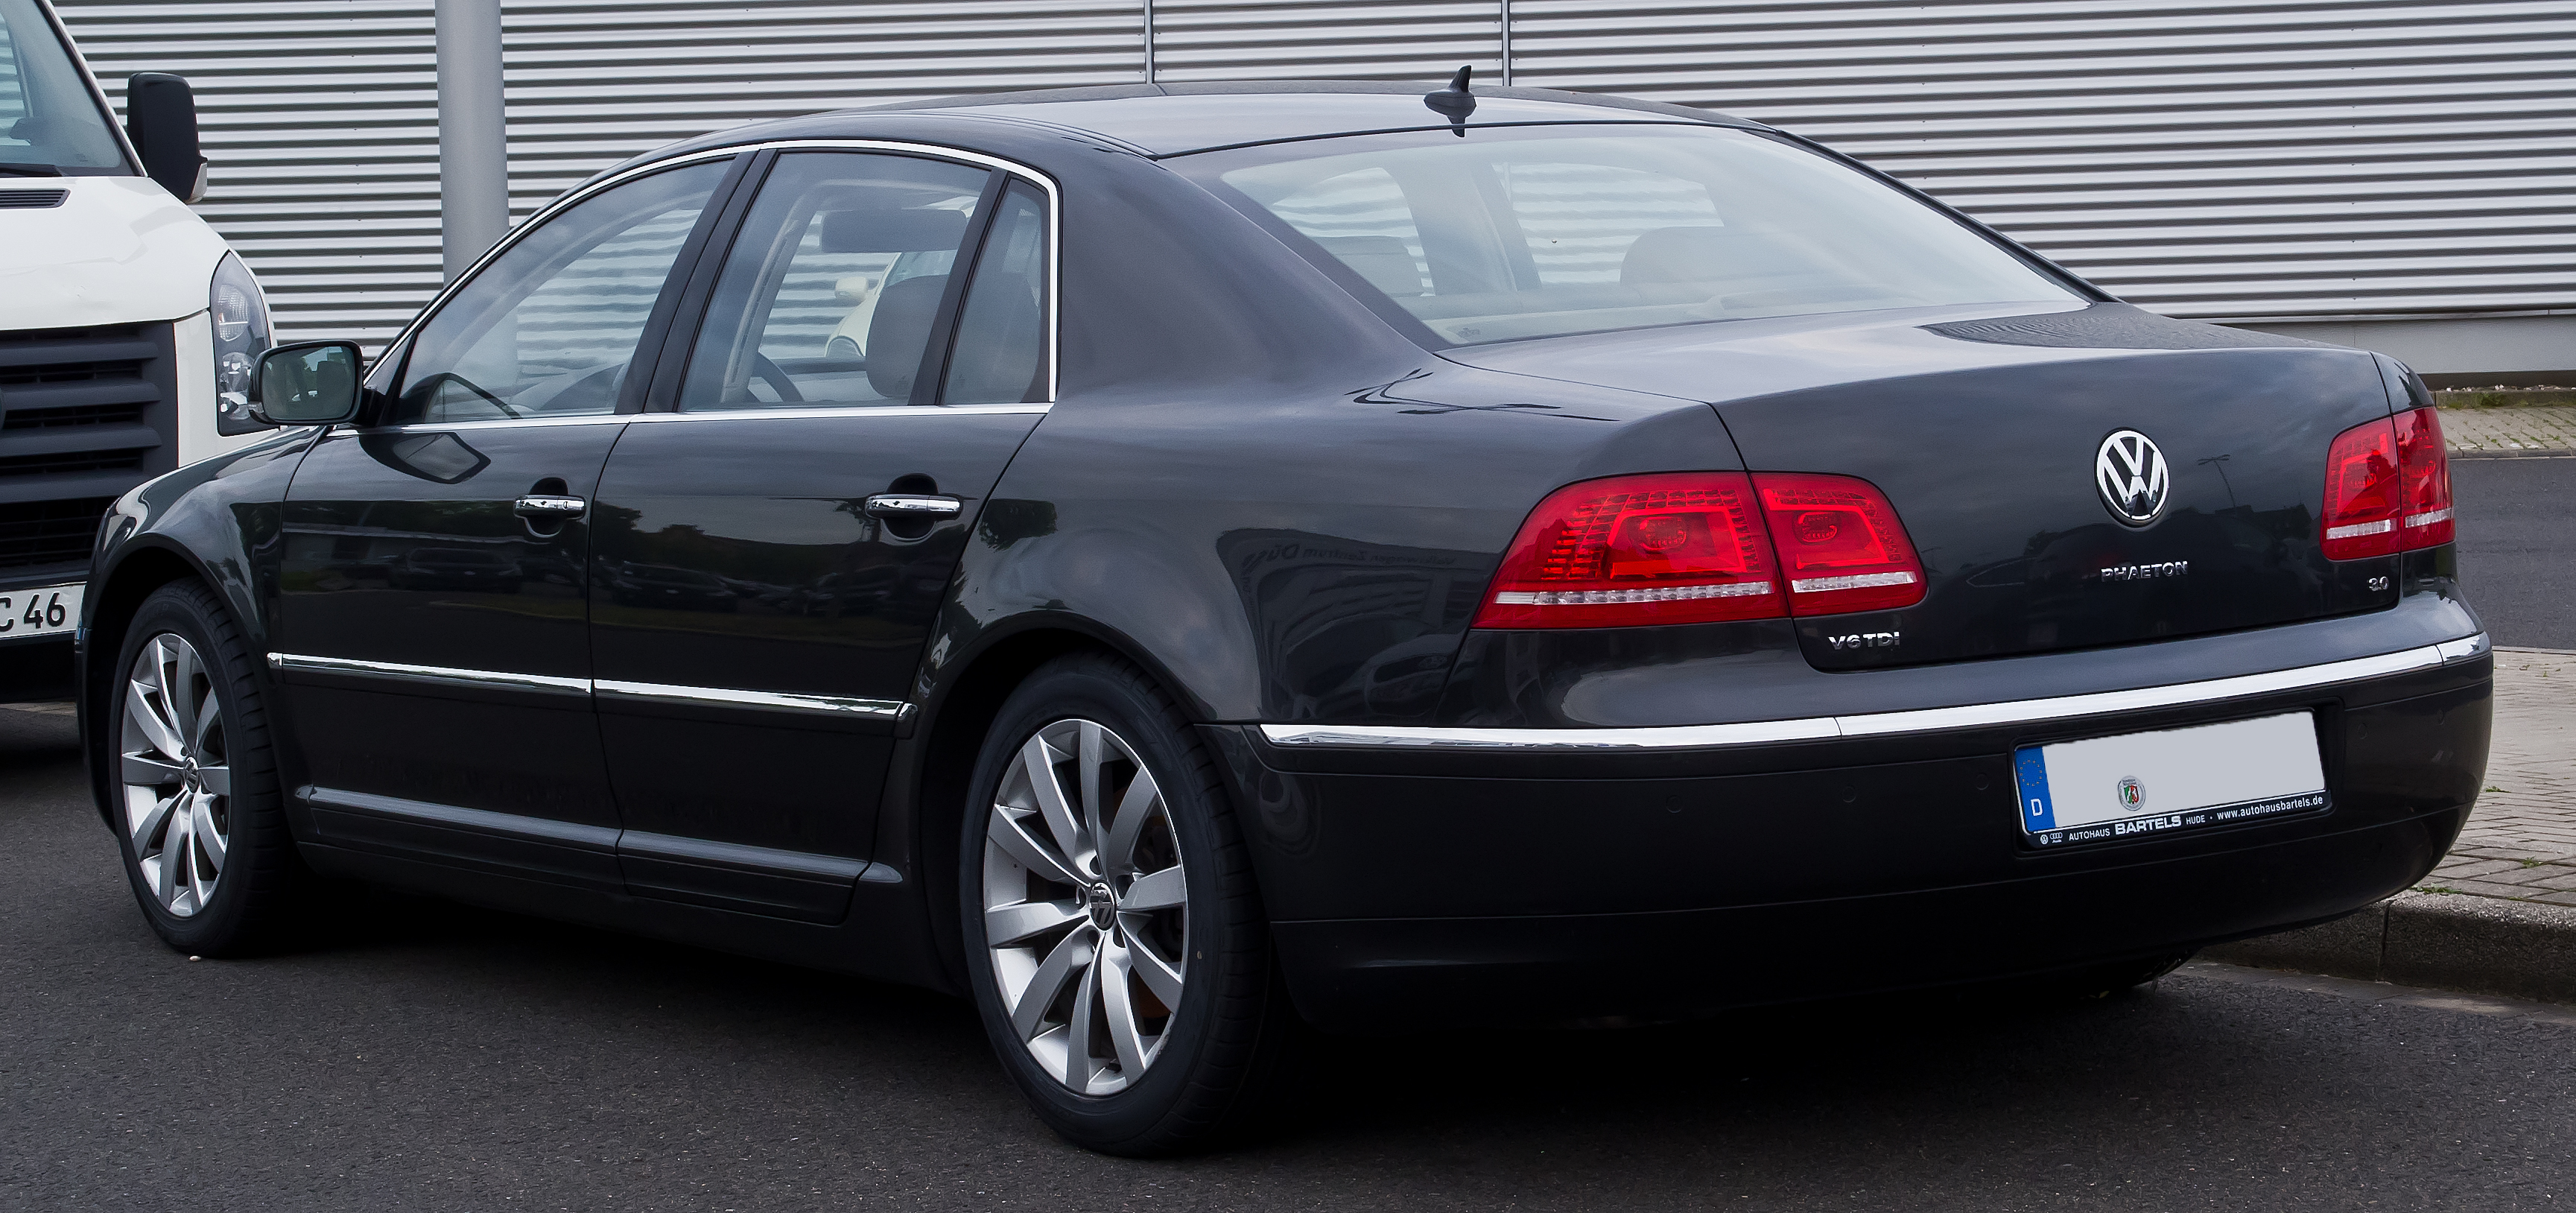 file vw phaeton 3 0 v6 tdi 4motion 2 facelift heckansicht 20 juni 2014 d. Black Bedroom Furniture Sets. Home Design Ideas